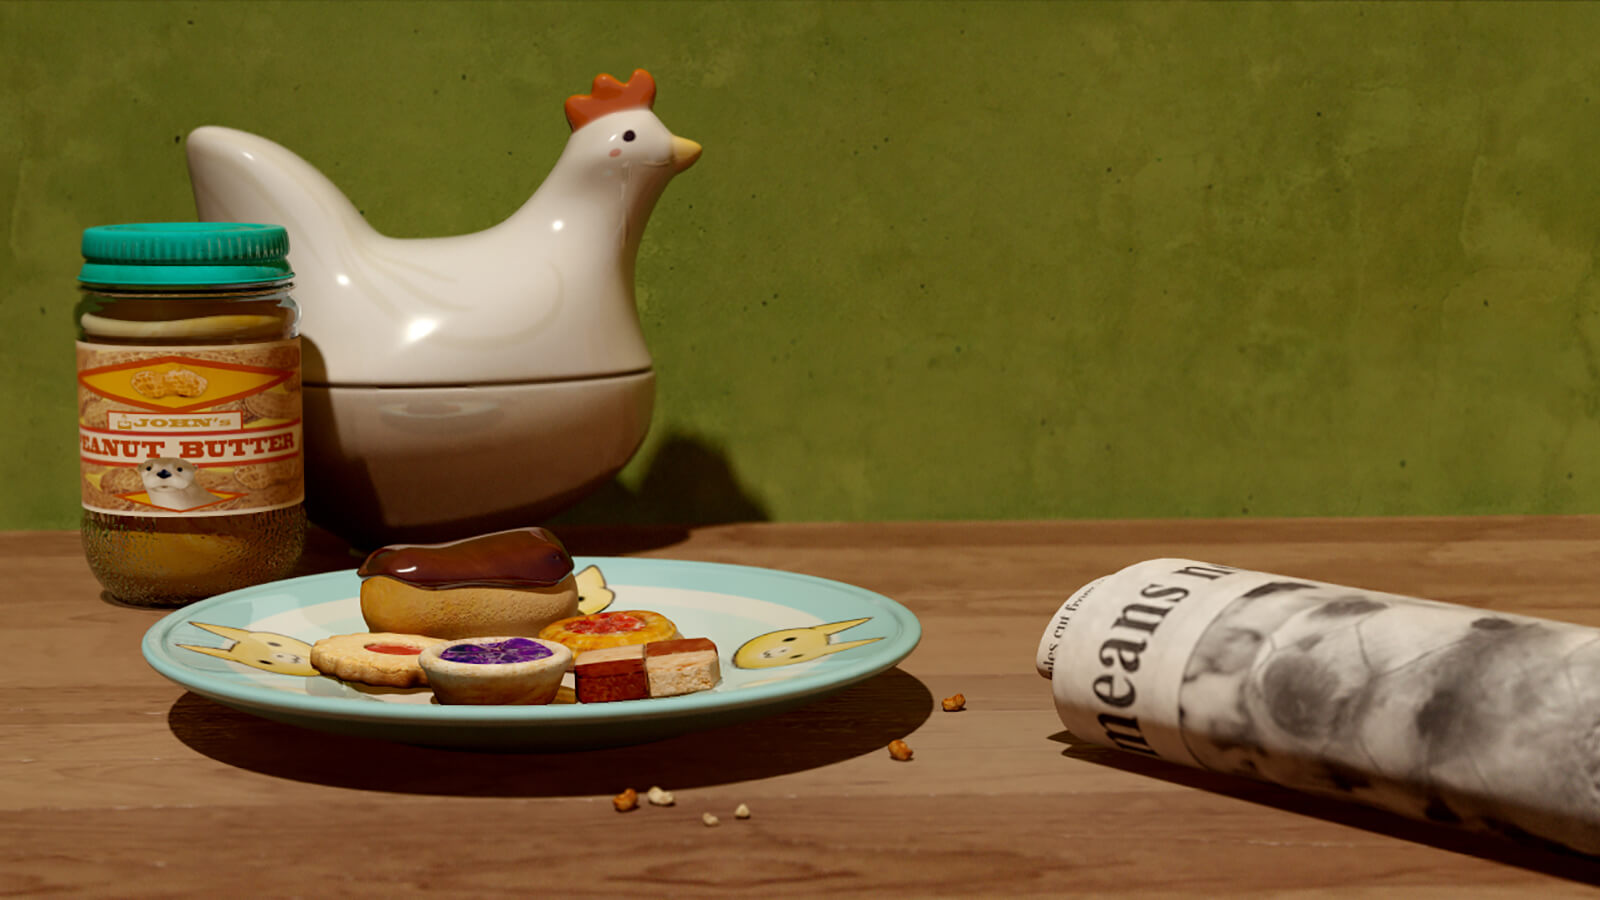 A CG scene on a wooden countertop with a plate of snacks, a rolled-up newspaper, a jar of peanut butter, and ceramic chicken.